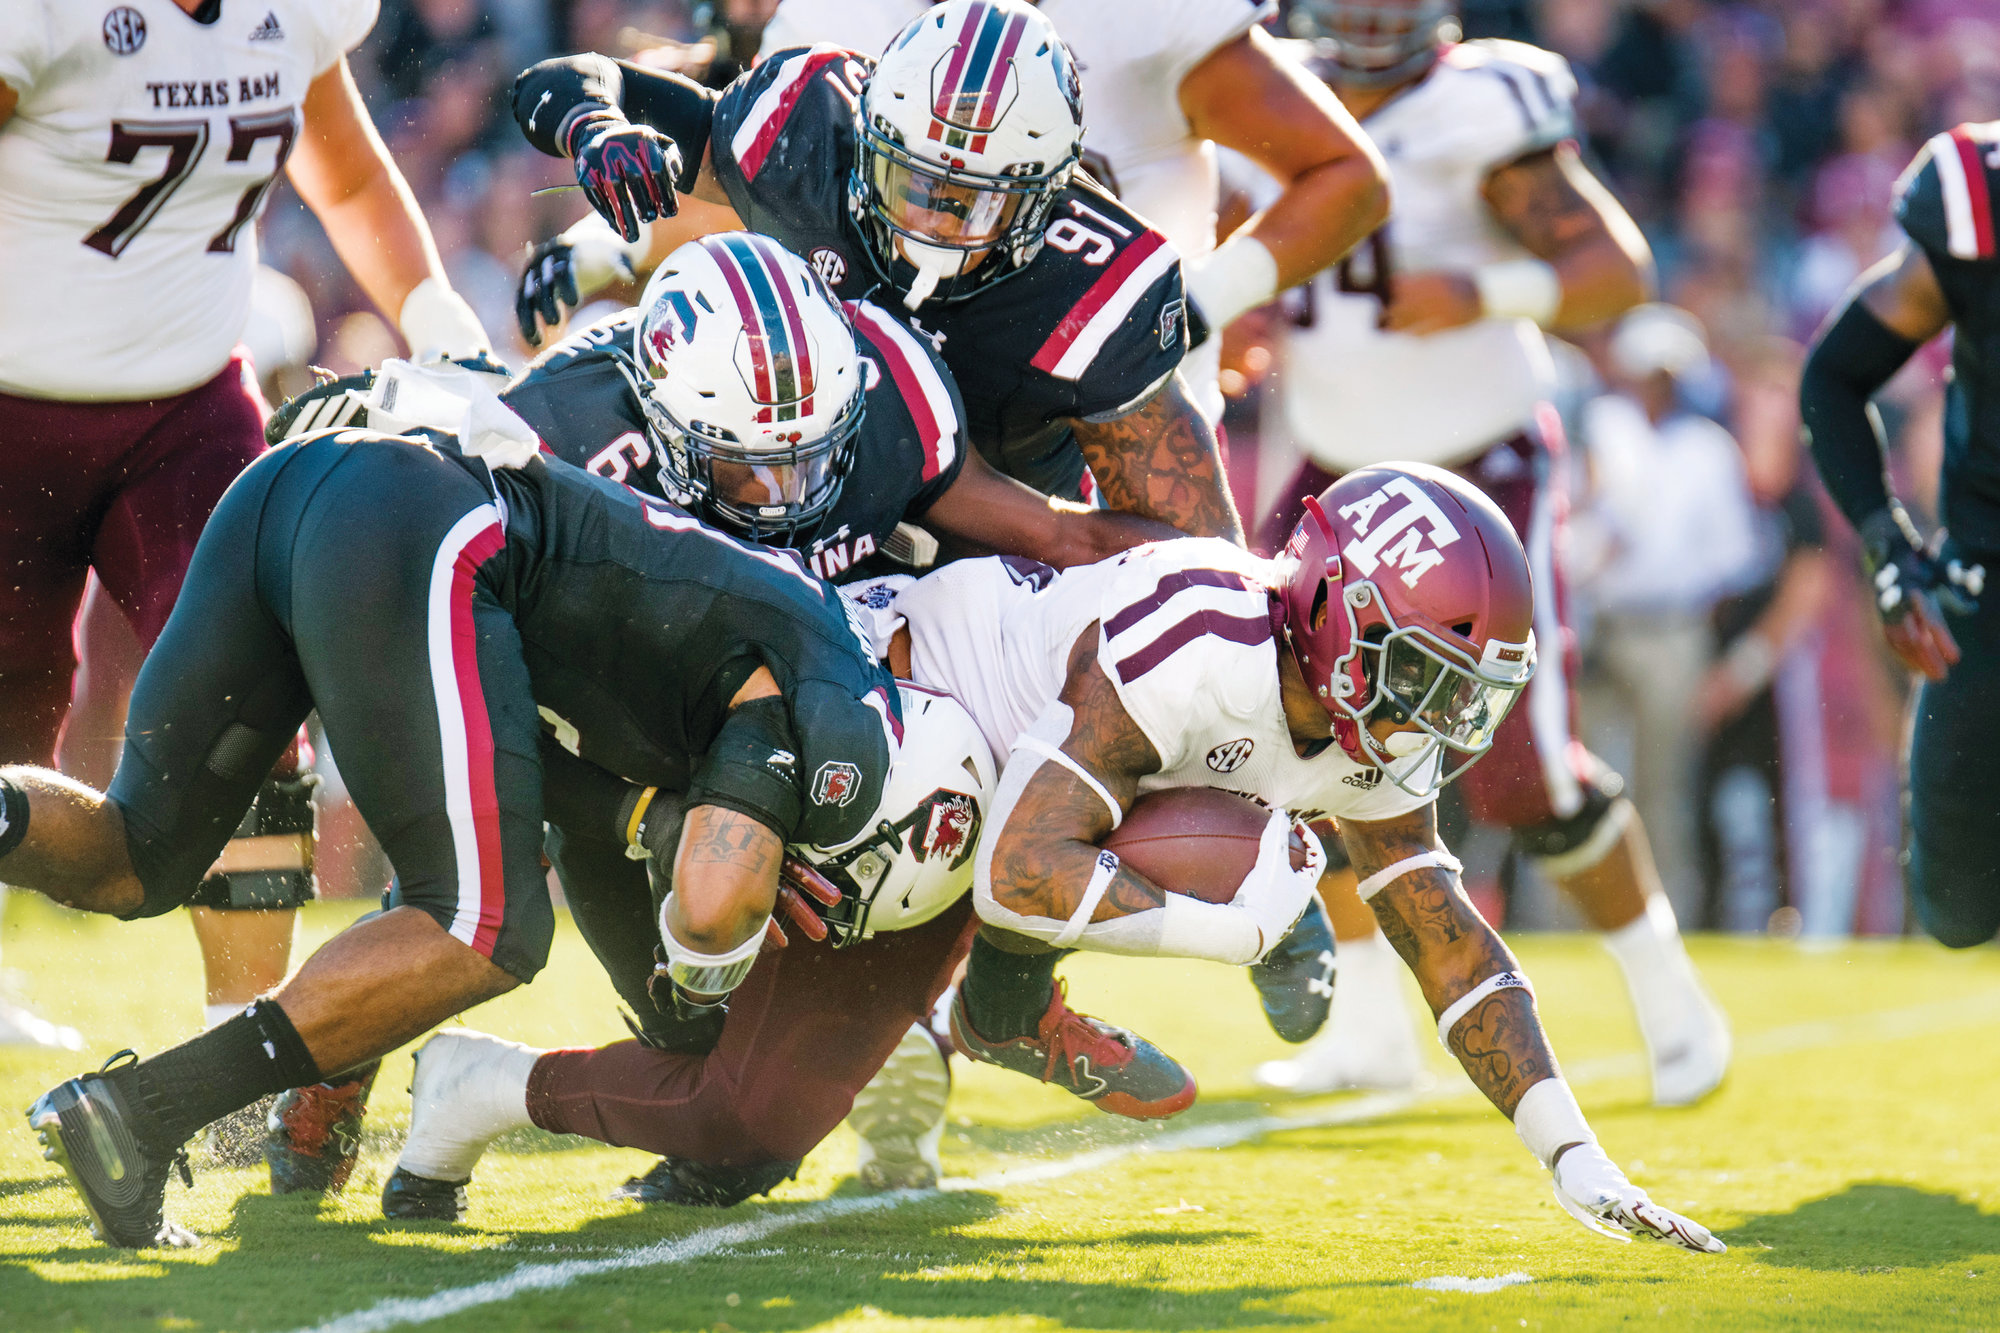 THE ASSOCIATED PRESS  Texas A&M running back Trayveon Williams (5) fights for yardage against the South Carolina defense during the Aggies' 26-23 victory on Saturday at Williams-Brice Stadium in Columbia.